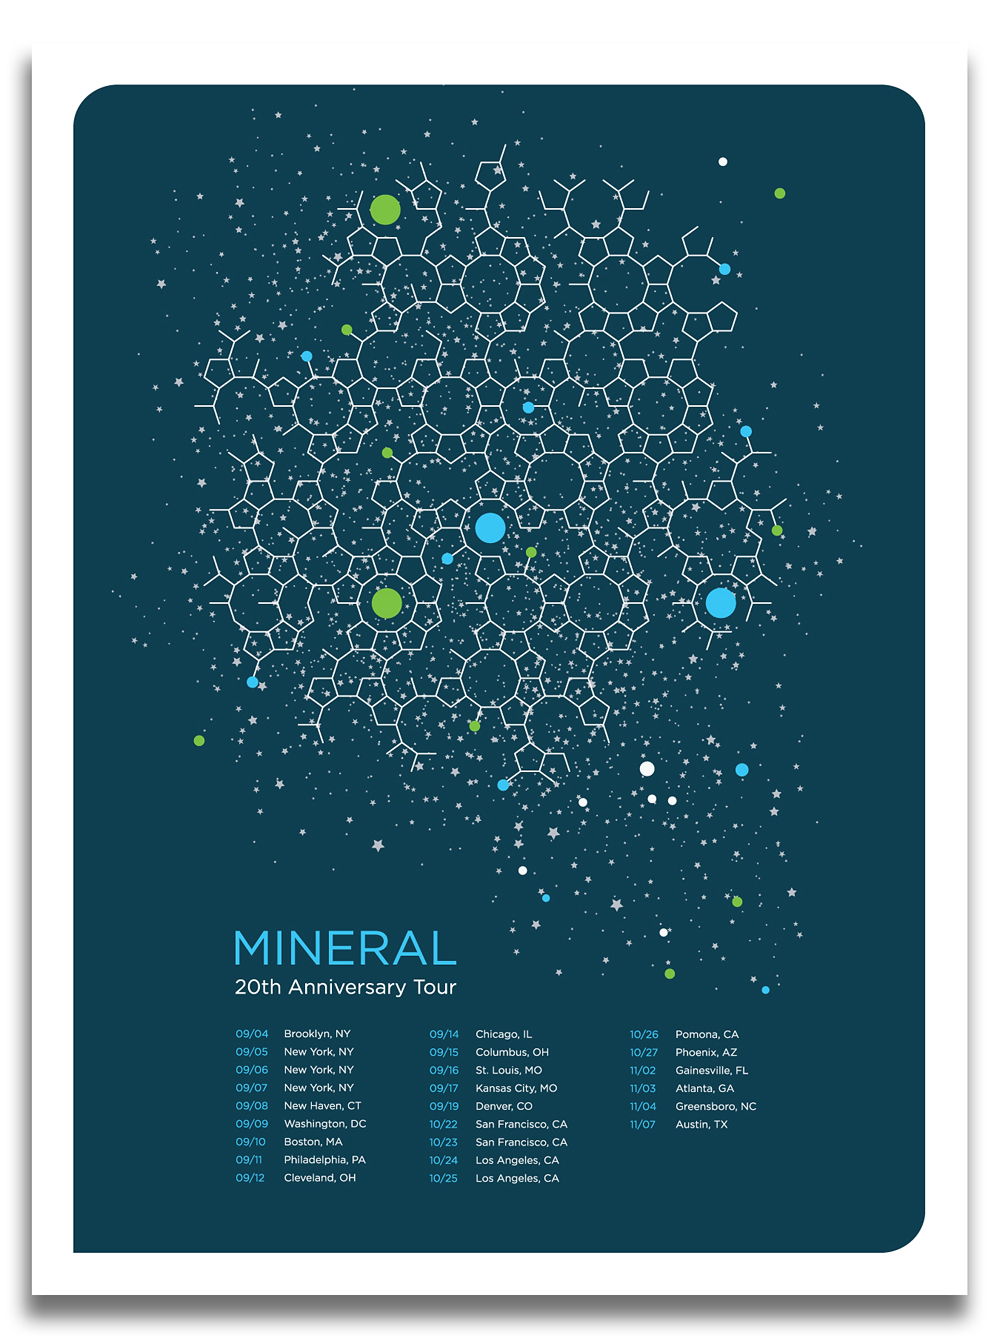 Mineral 20th Anniversary Tour